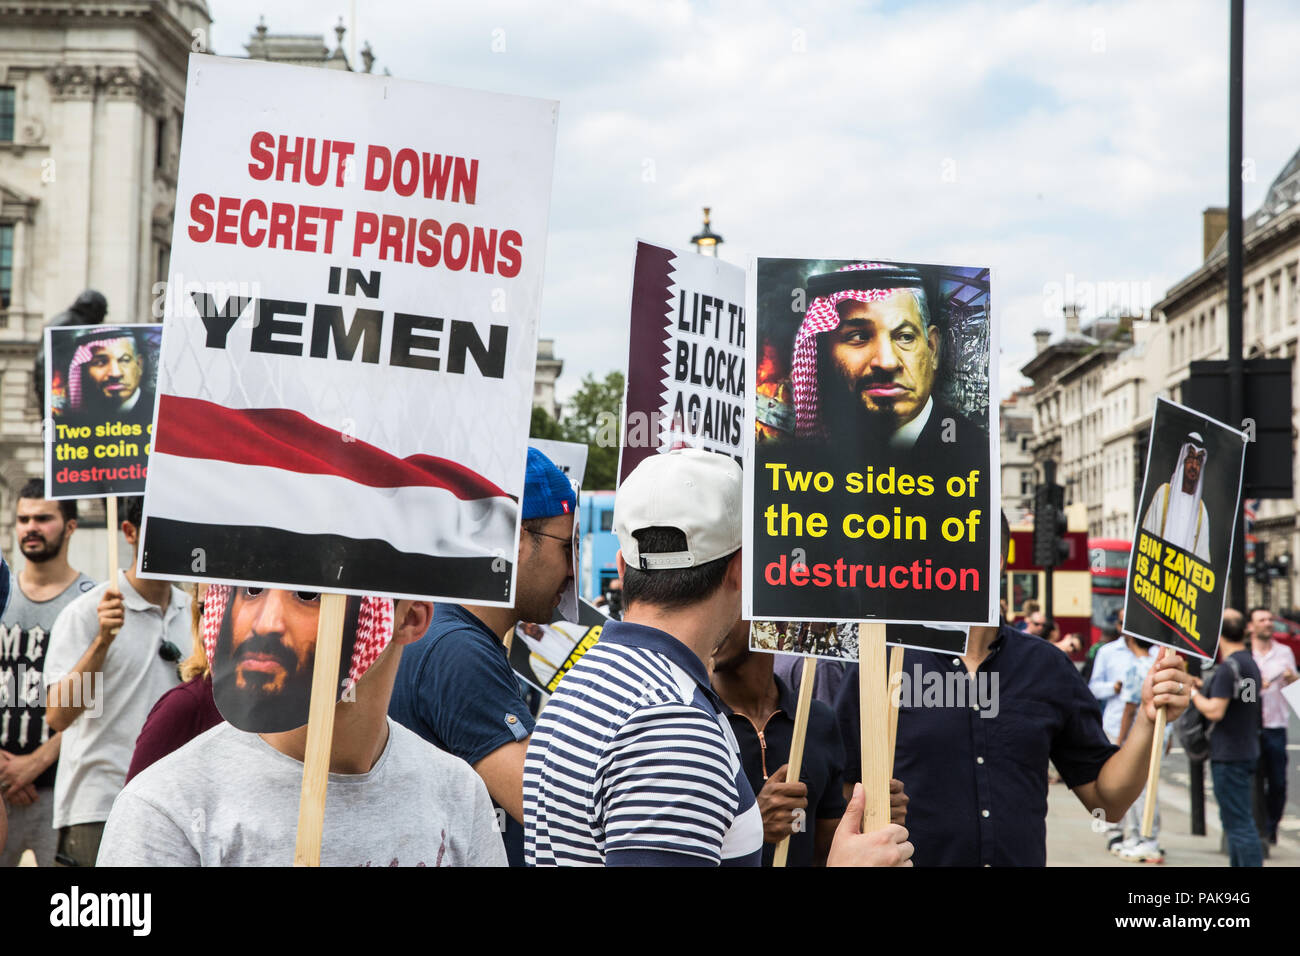 London, UK. 23rd July, 2018. Opponents of a visit to the UK by Qatar's Emir Tamim Bin Hamad Al Thani protest in Parliament Square against Qatari support for extremist and terrorist groups. There was also a smaller counter-protest. Emir Tamim is expected to meet Prime Minister Theresa May during his visit. Credit: Mark Kerrison/Alamy Live News Stock Photo